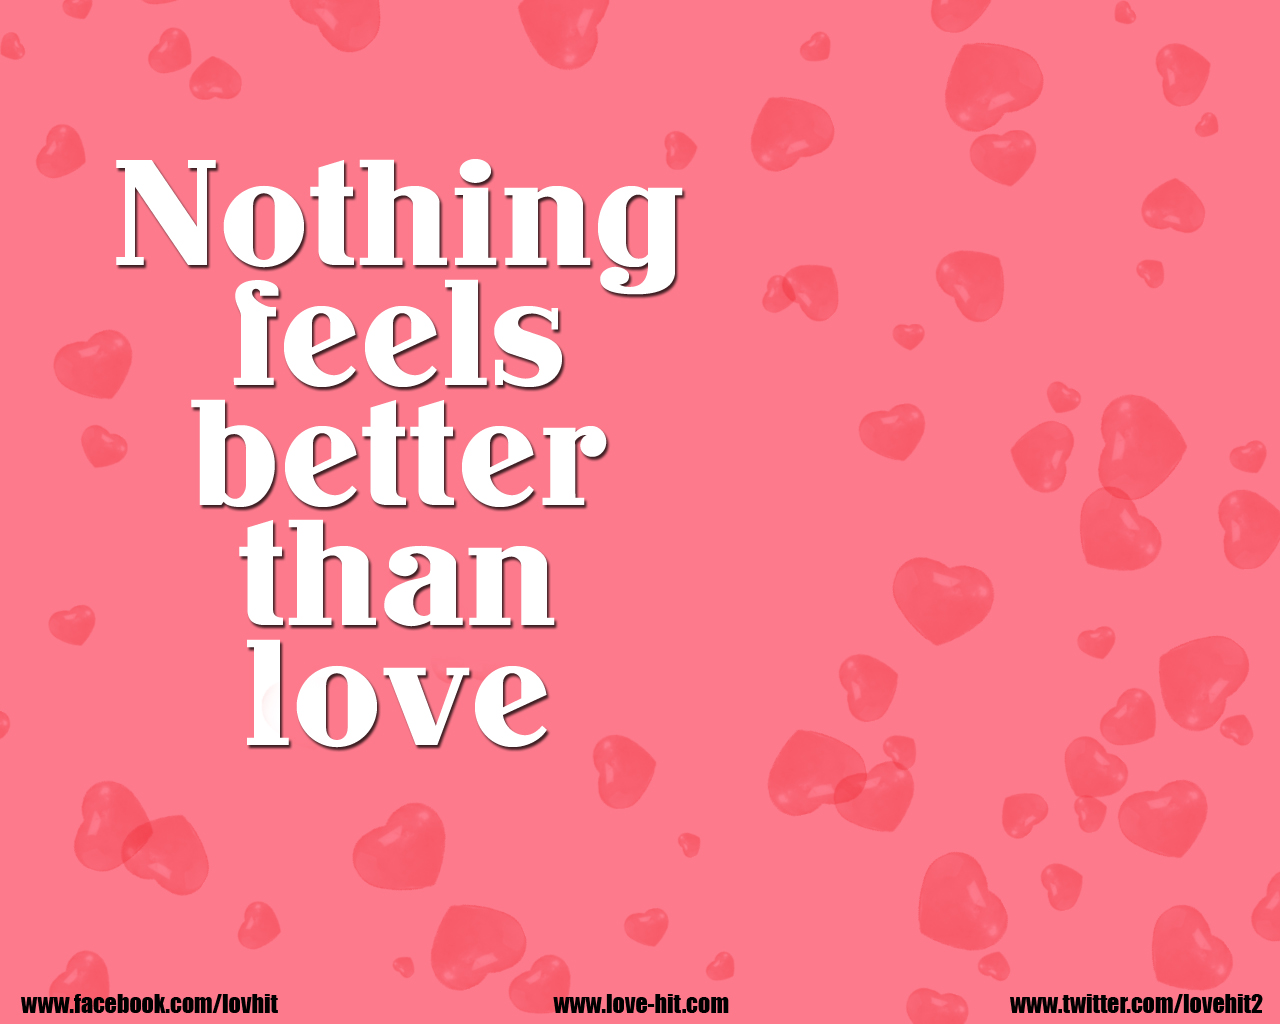 Nothing feels better than love